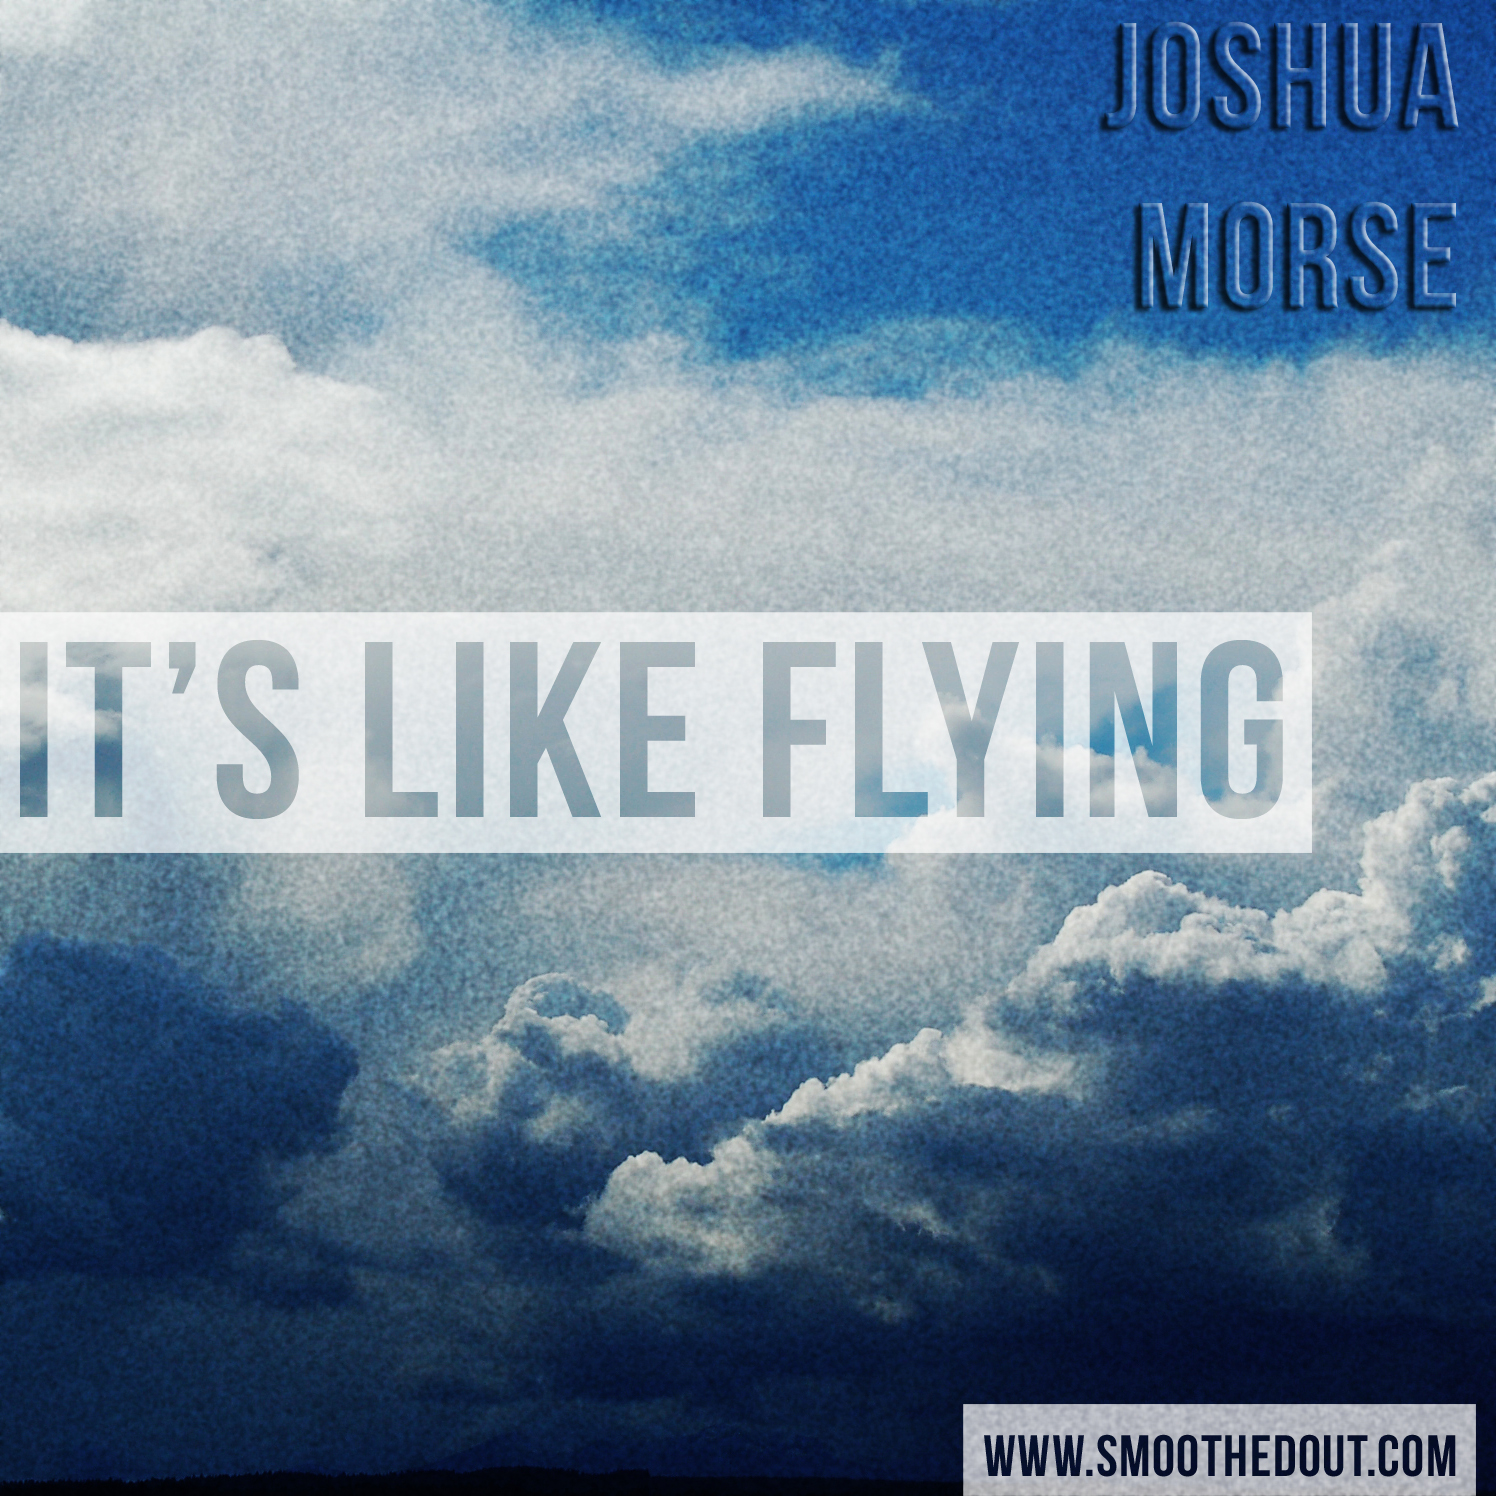 Joshua Morse - It's Like Flying